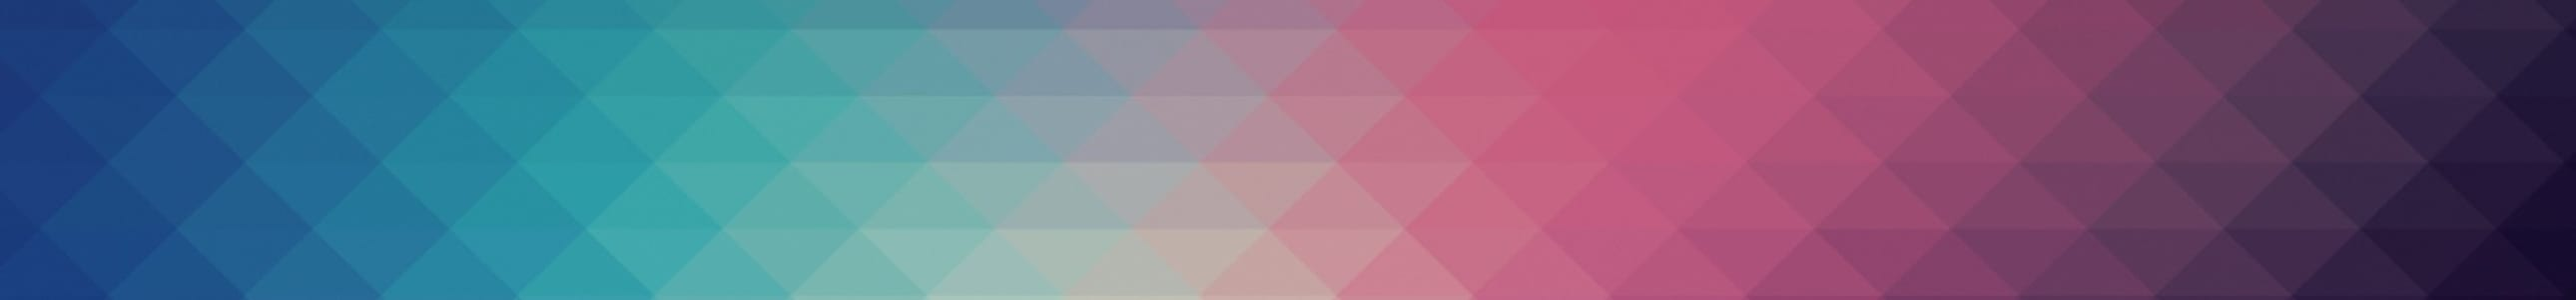 banner-cables_1